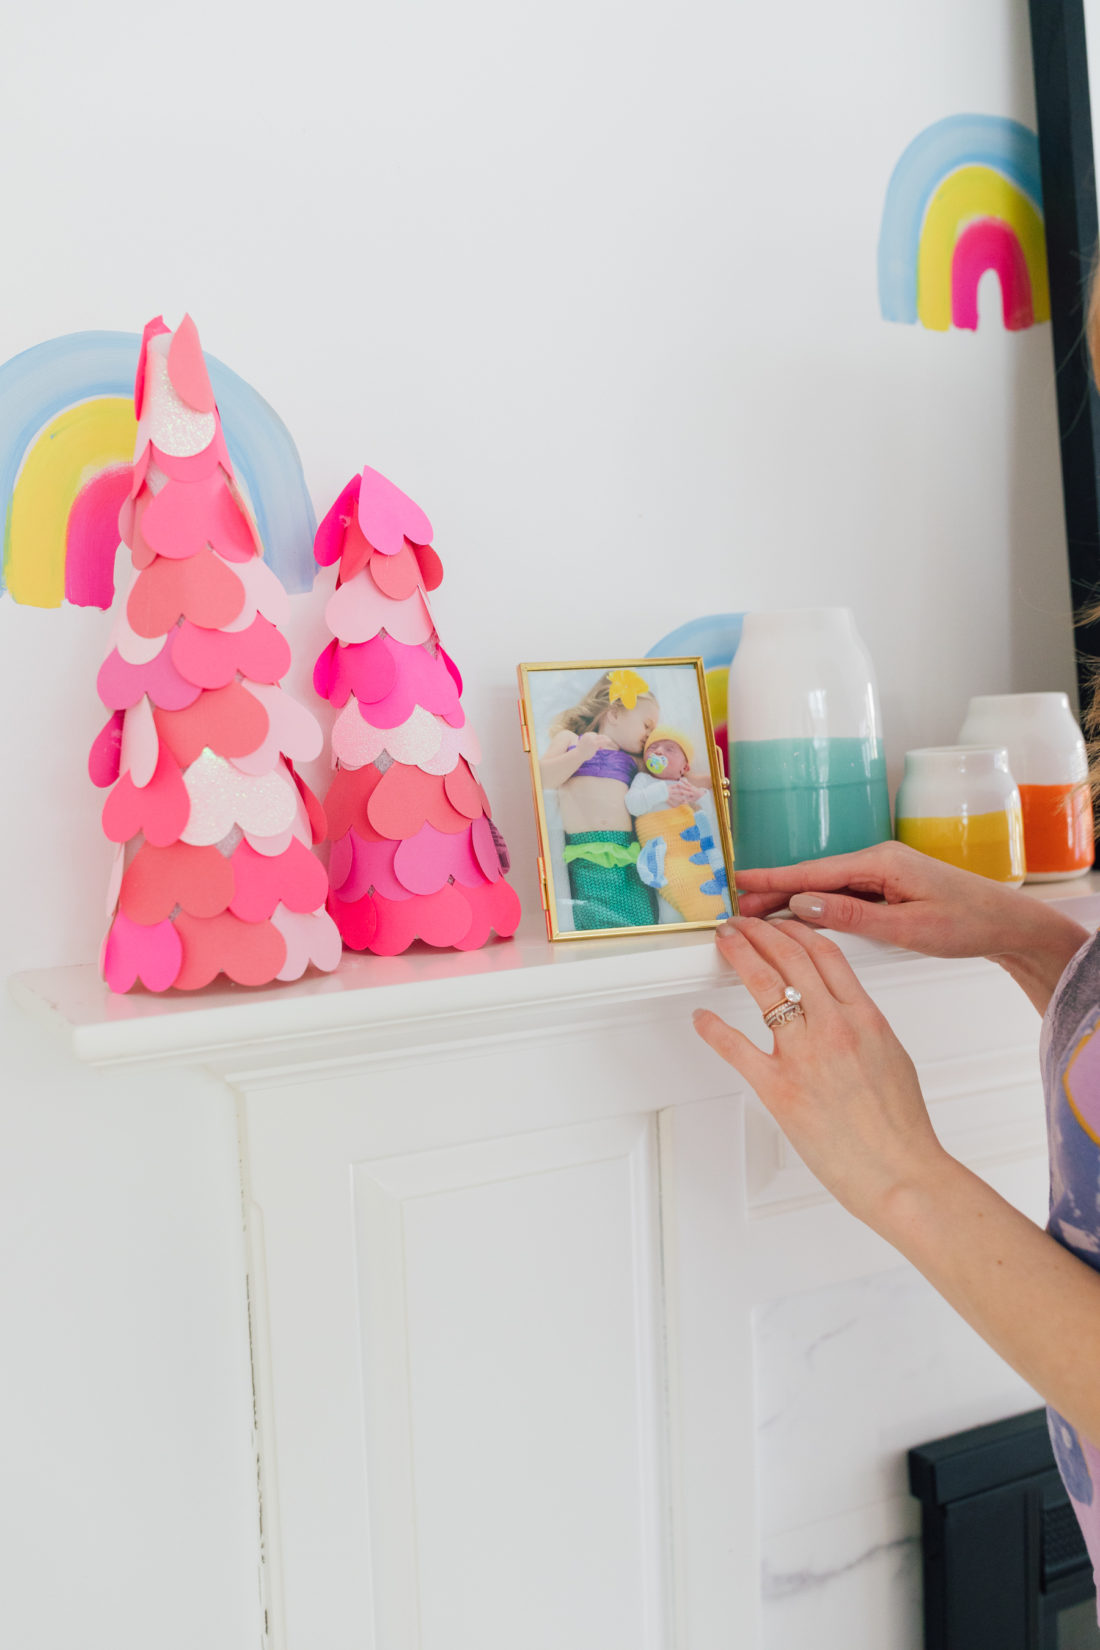 Eva Amurri Martino shares a DIY for Ombre heart trees as an easy craft for valentine's day